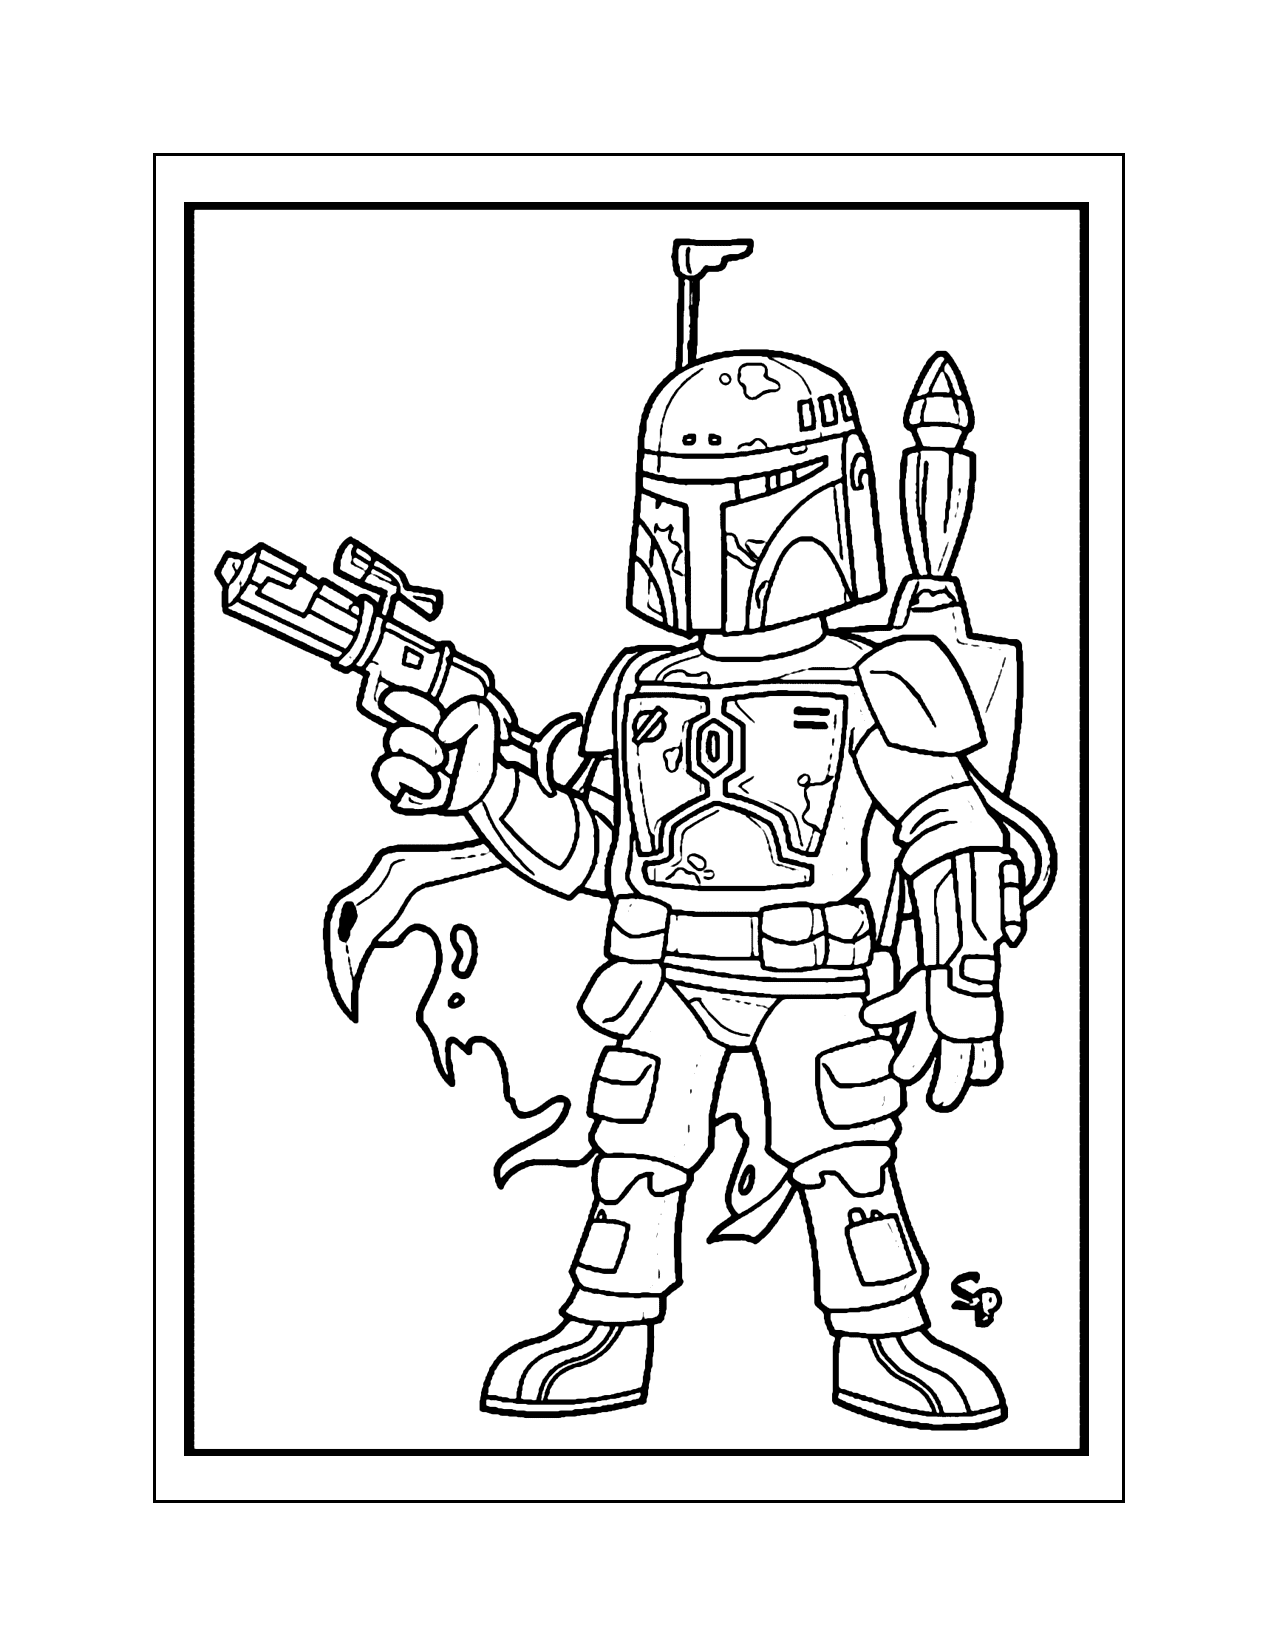 Cute Toy Cartoon Boba Fett Coloring Page